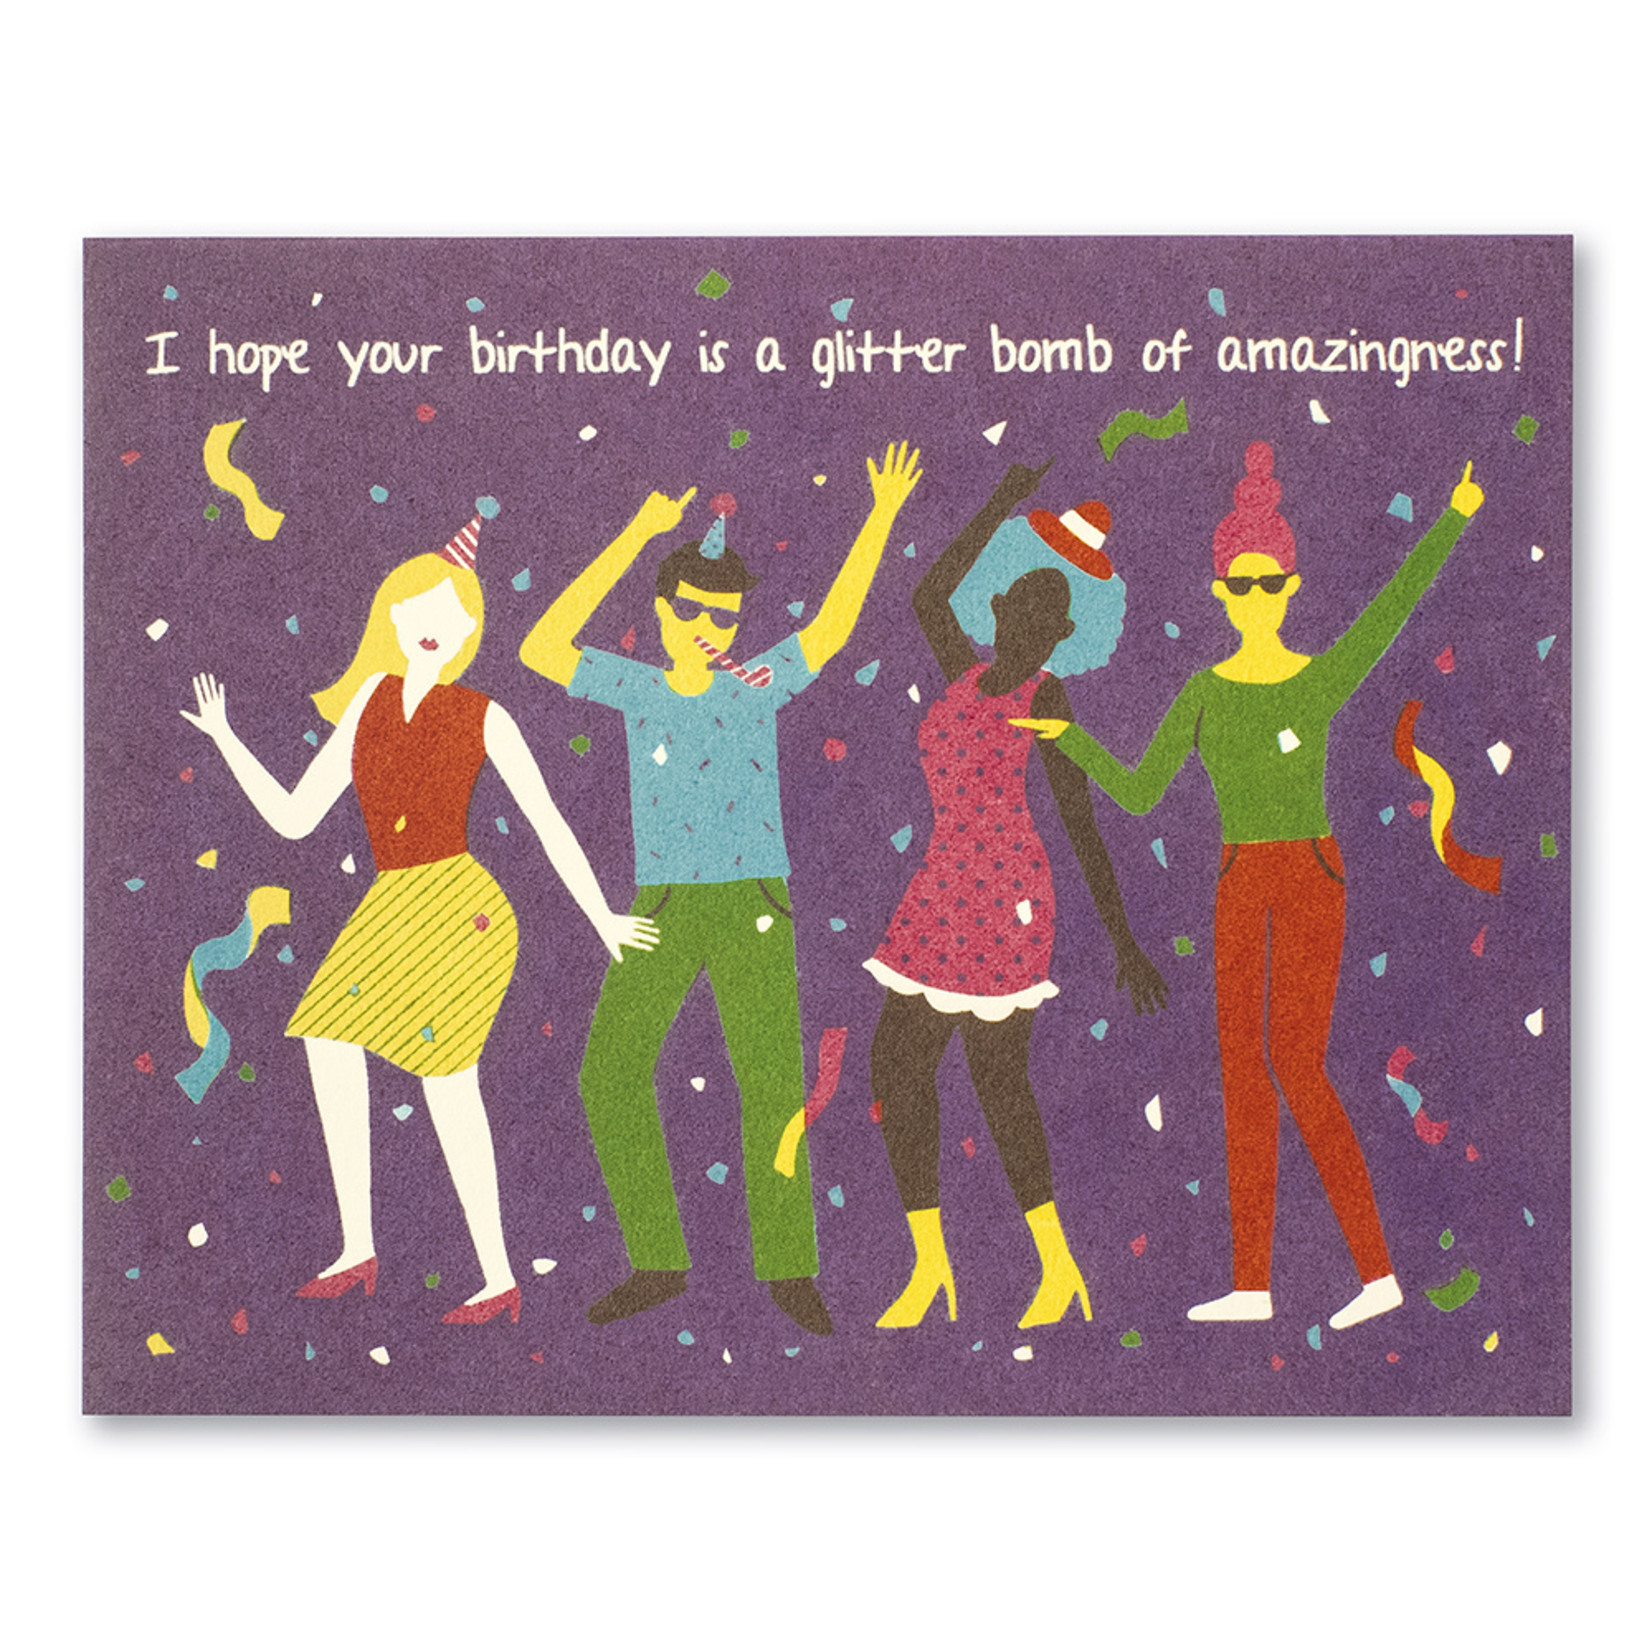 Love Muchly I hope your birthday is a glitter bomb of amazingness!